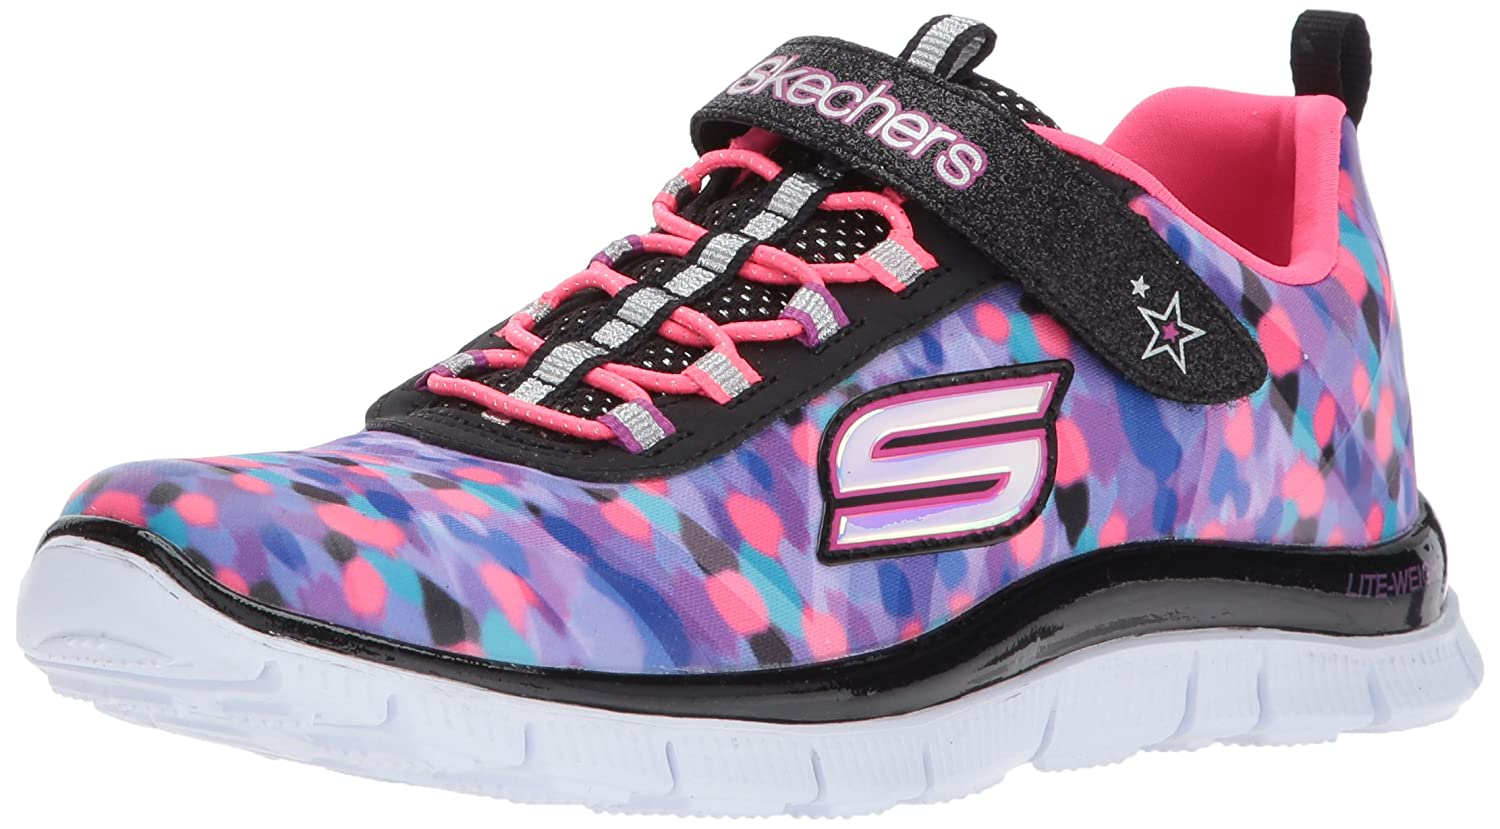 Skechers Kids Kids' Skech Appeal-Color Daze Sneaker SKECH APPEAL - COLOR DAZE - K